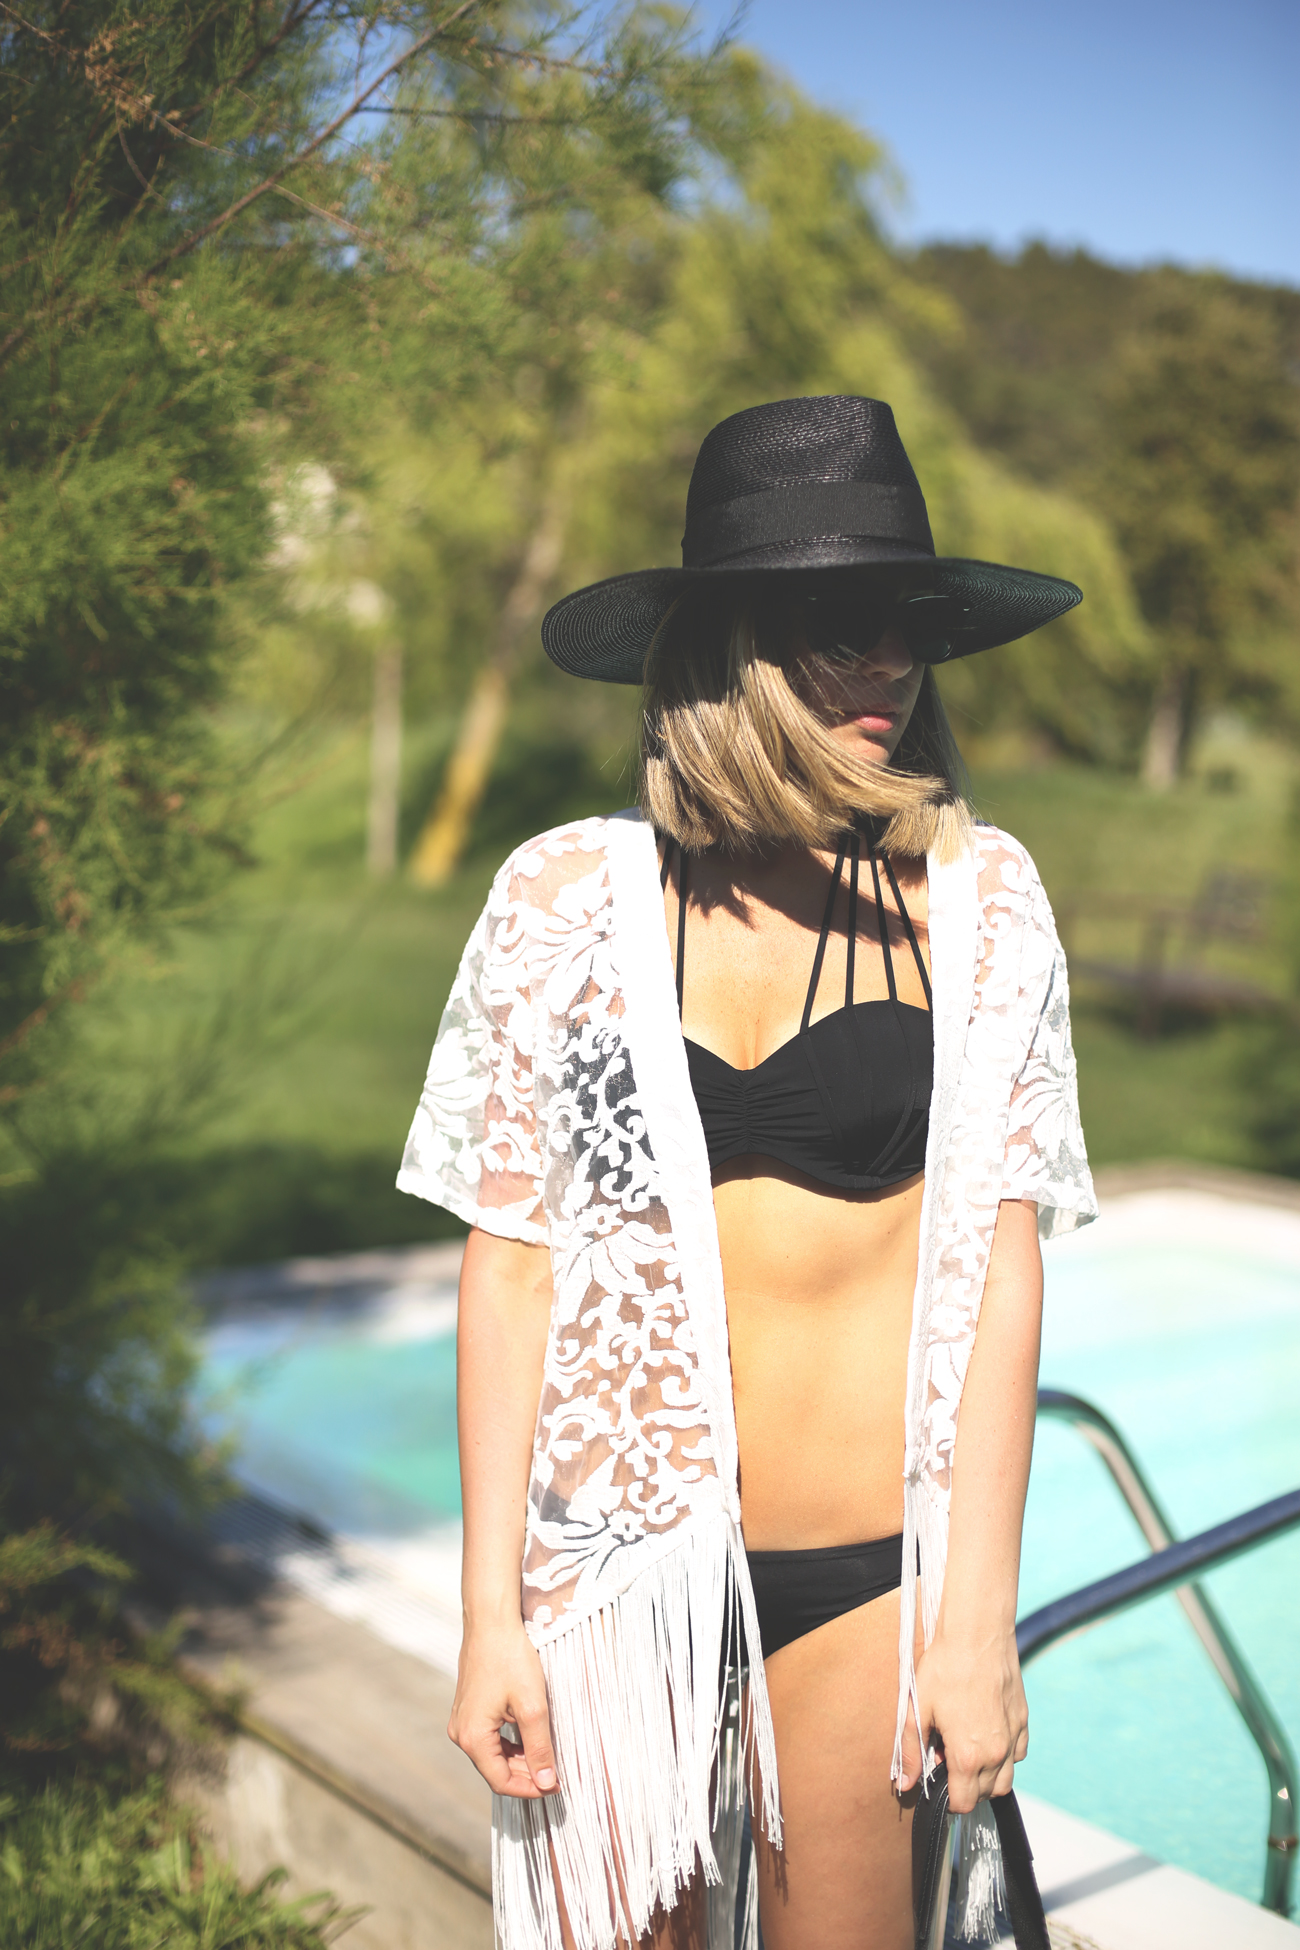 fashion blogger, street style, swimwear, blonde girl, black bikini, look con kimono, look playa, summer look, fringed,